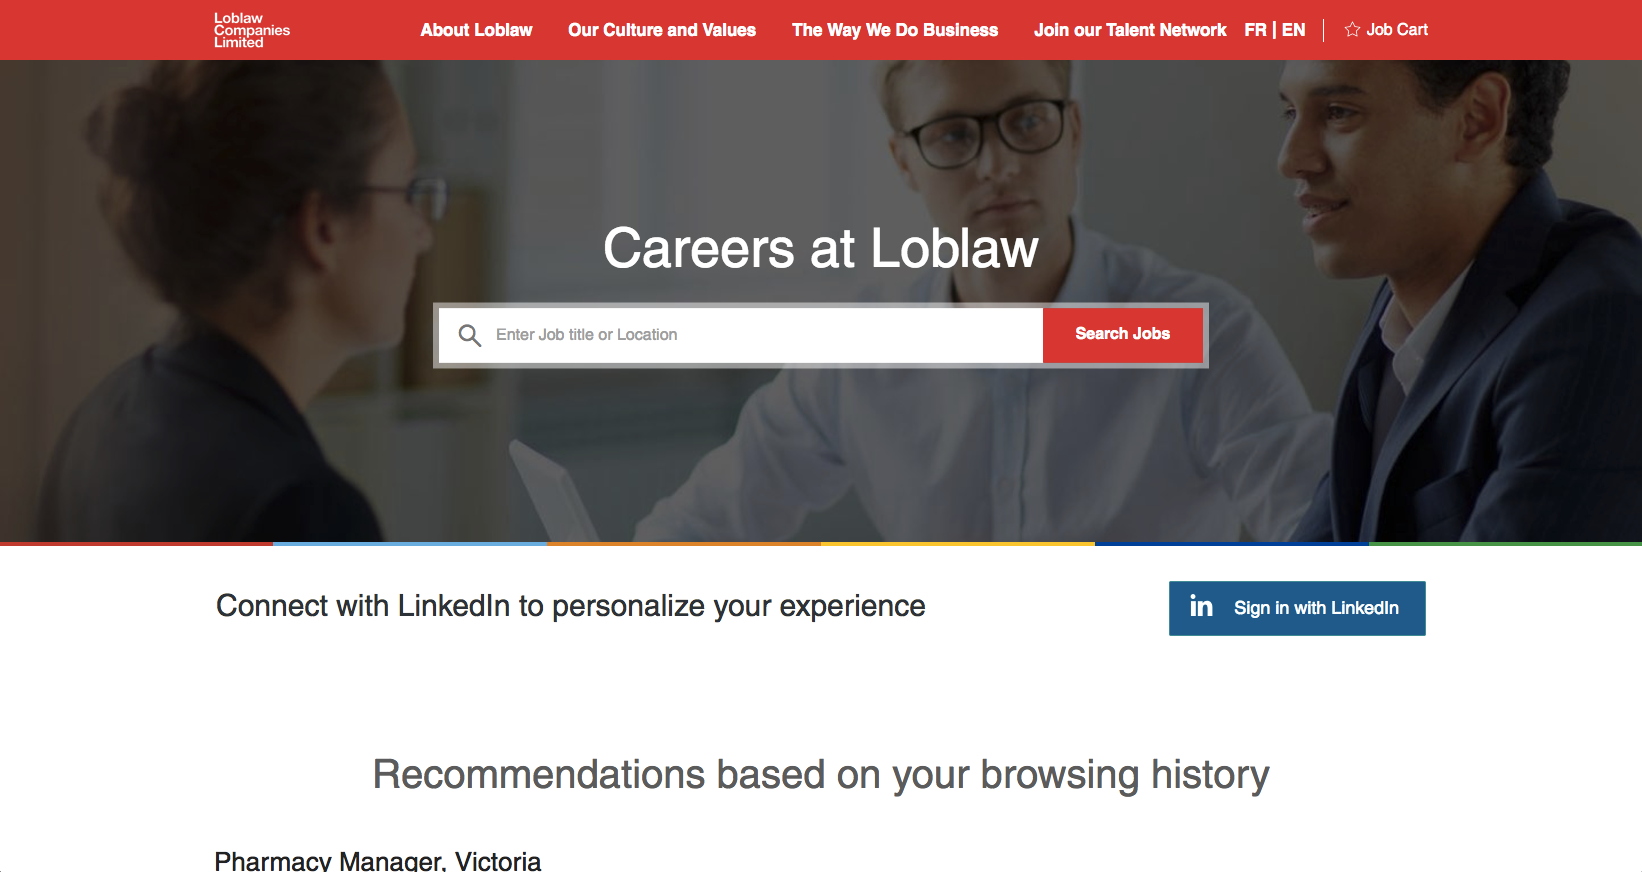 Loblaw Companies Limited career site is powered by Phenom People